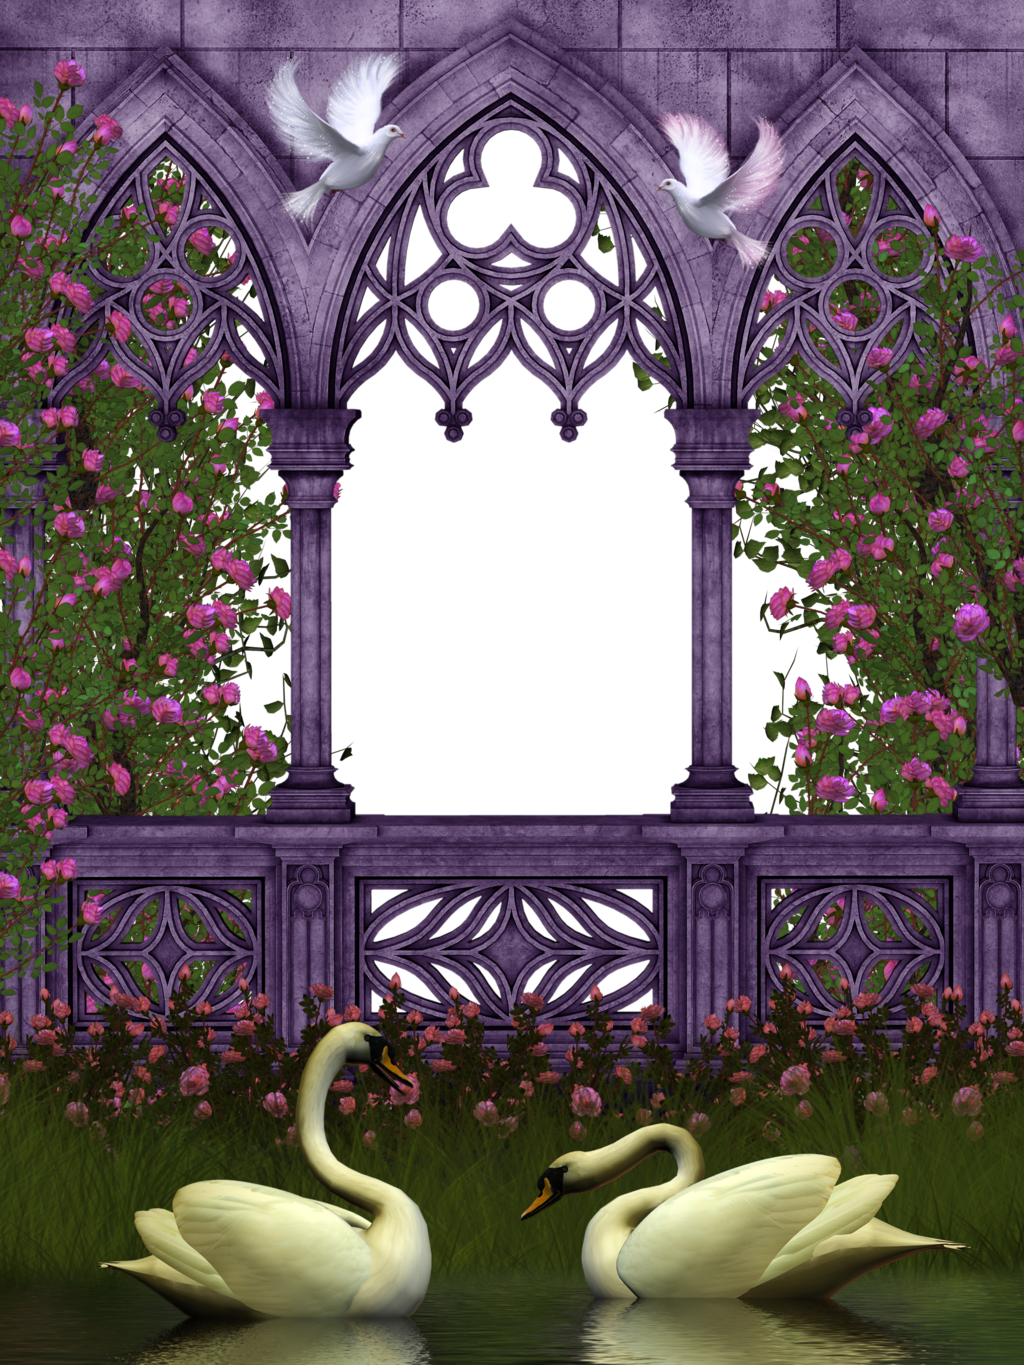 Rose Garden 44 By Collect And Creat On Deviantart Art Background Pretty Wallpapers Framed Wedding Photos